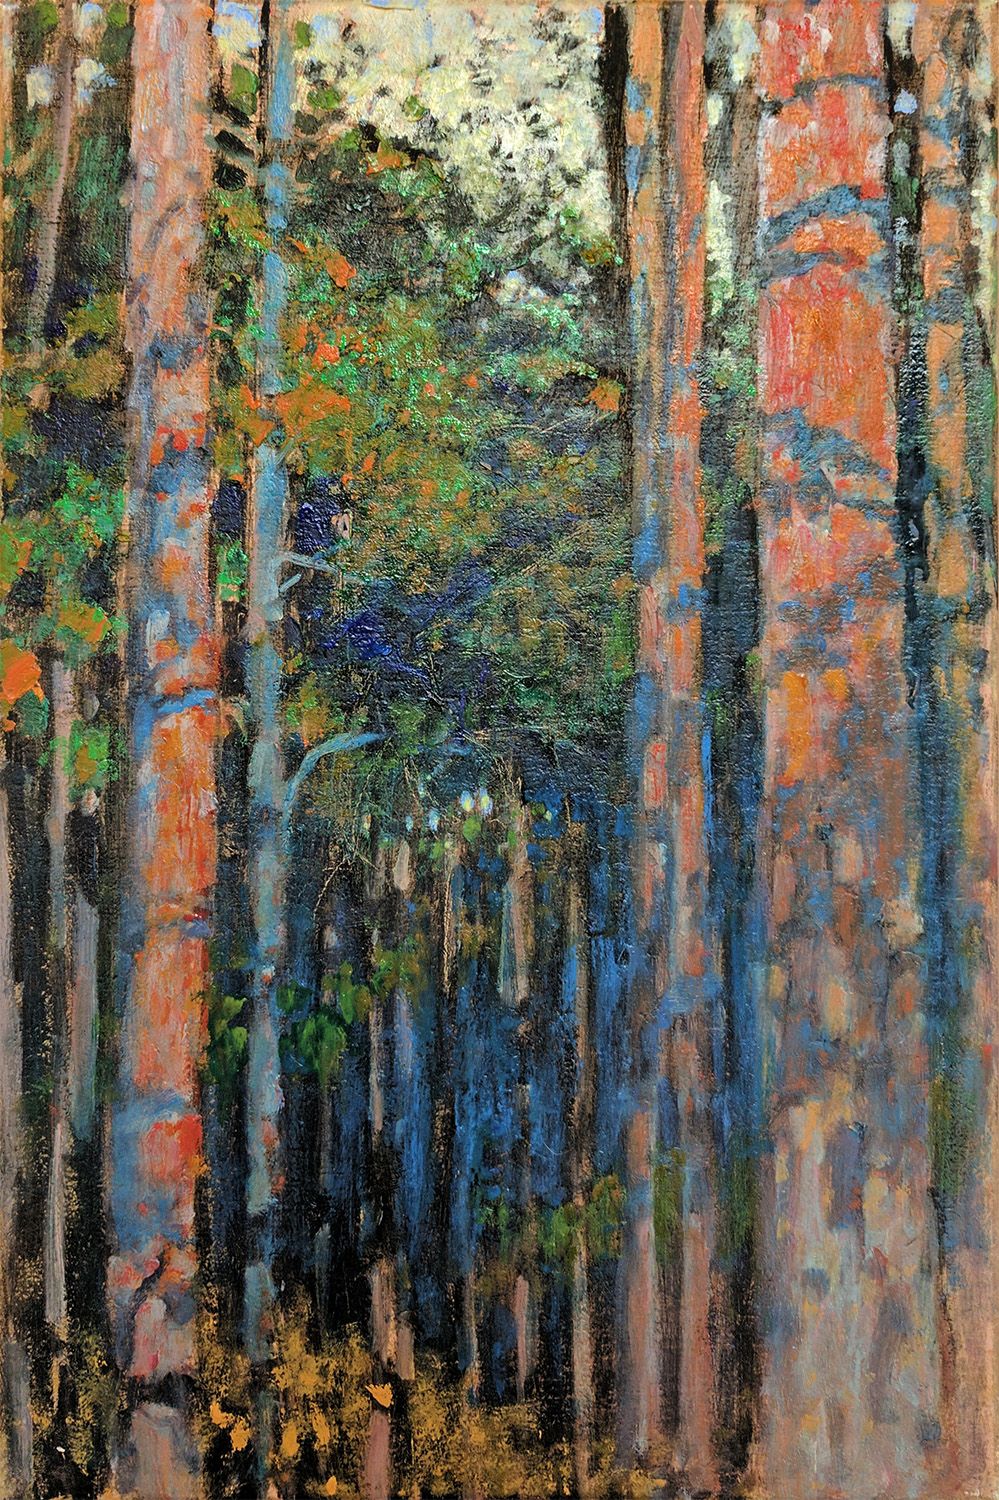 Pine Forest | oil on linen | 18 x 12"